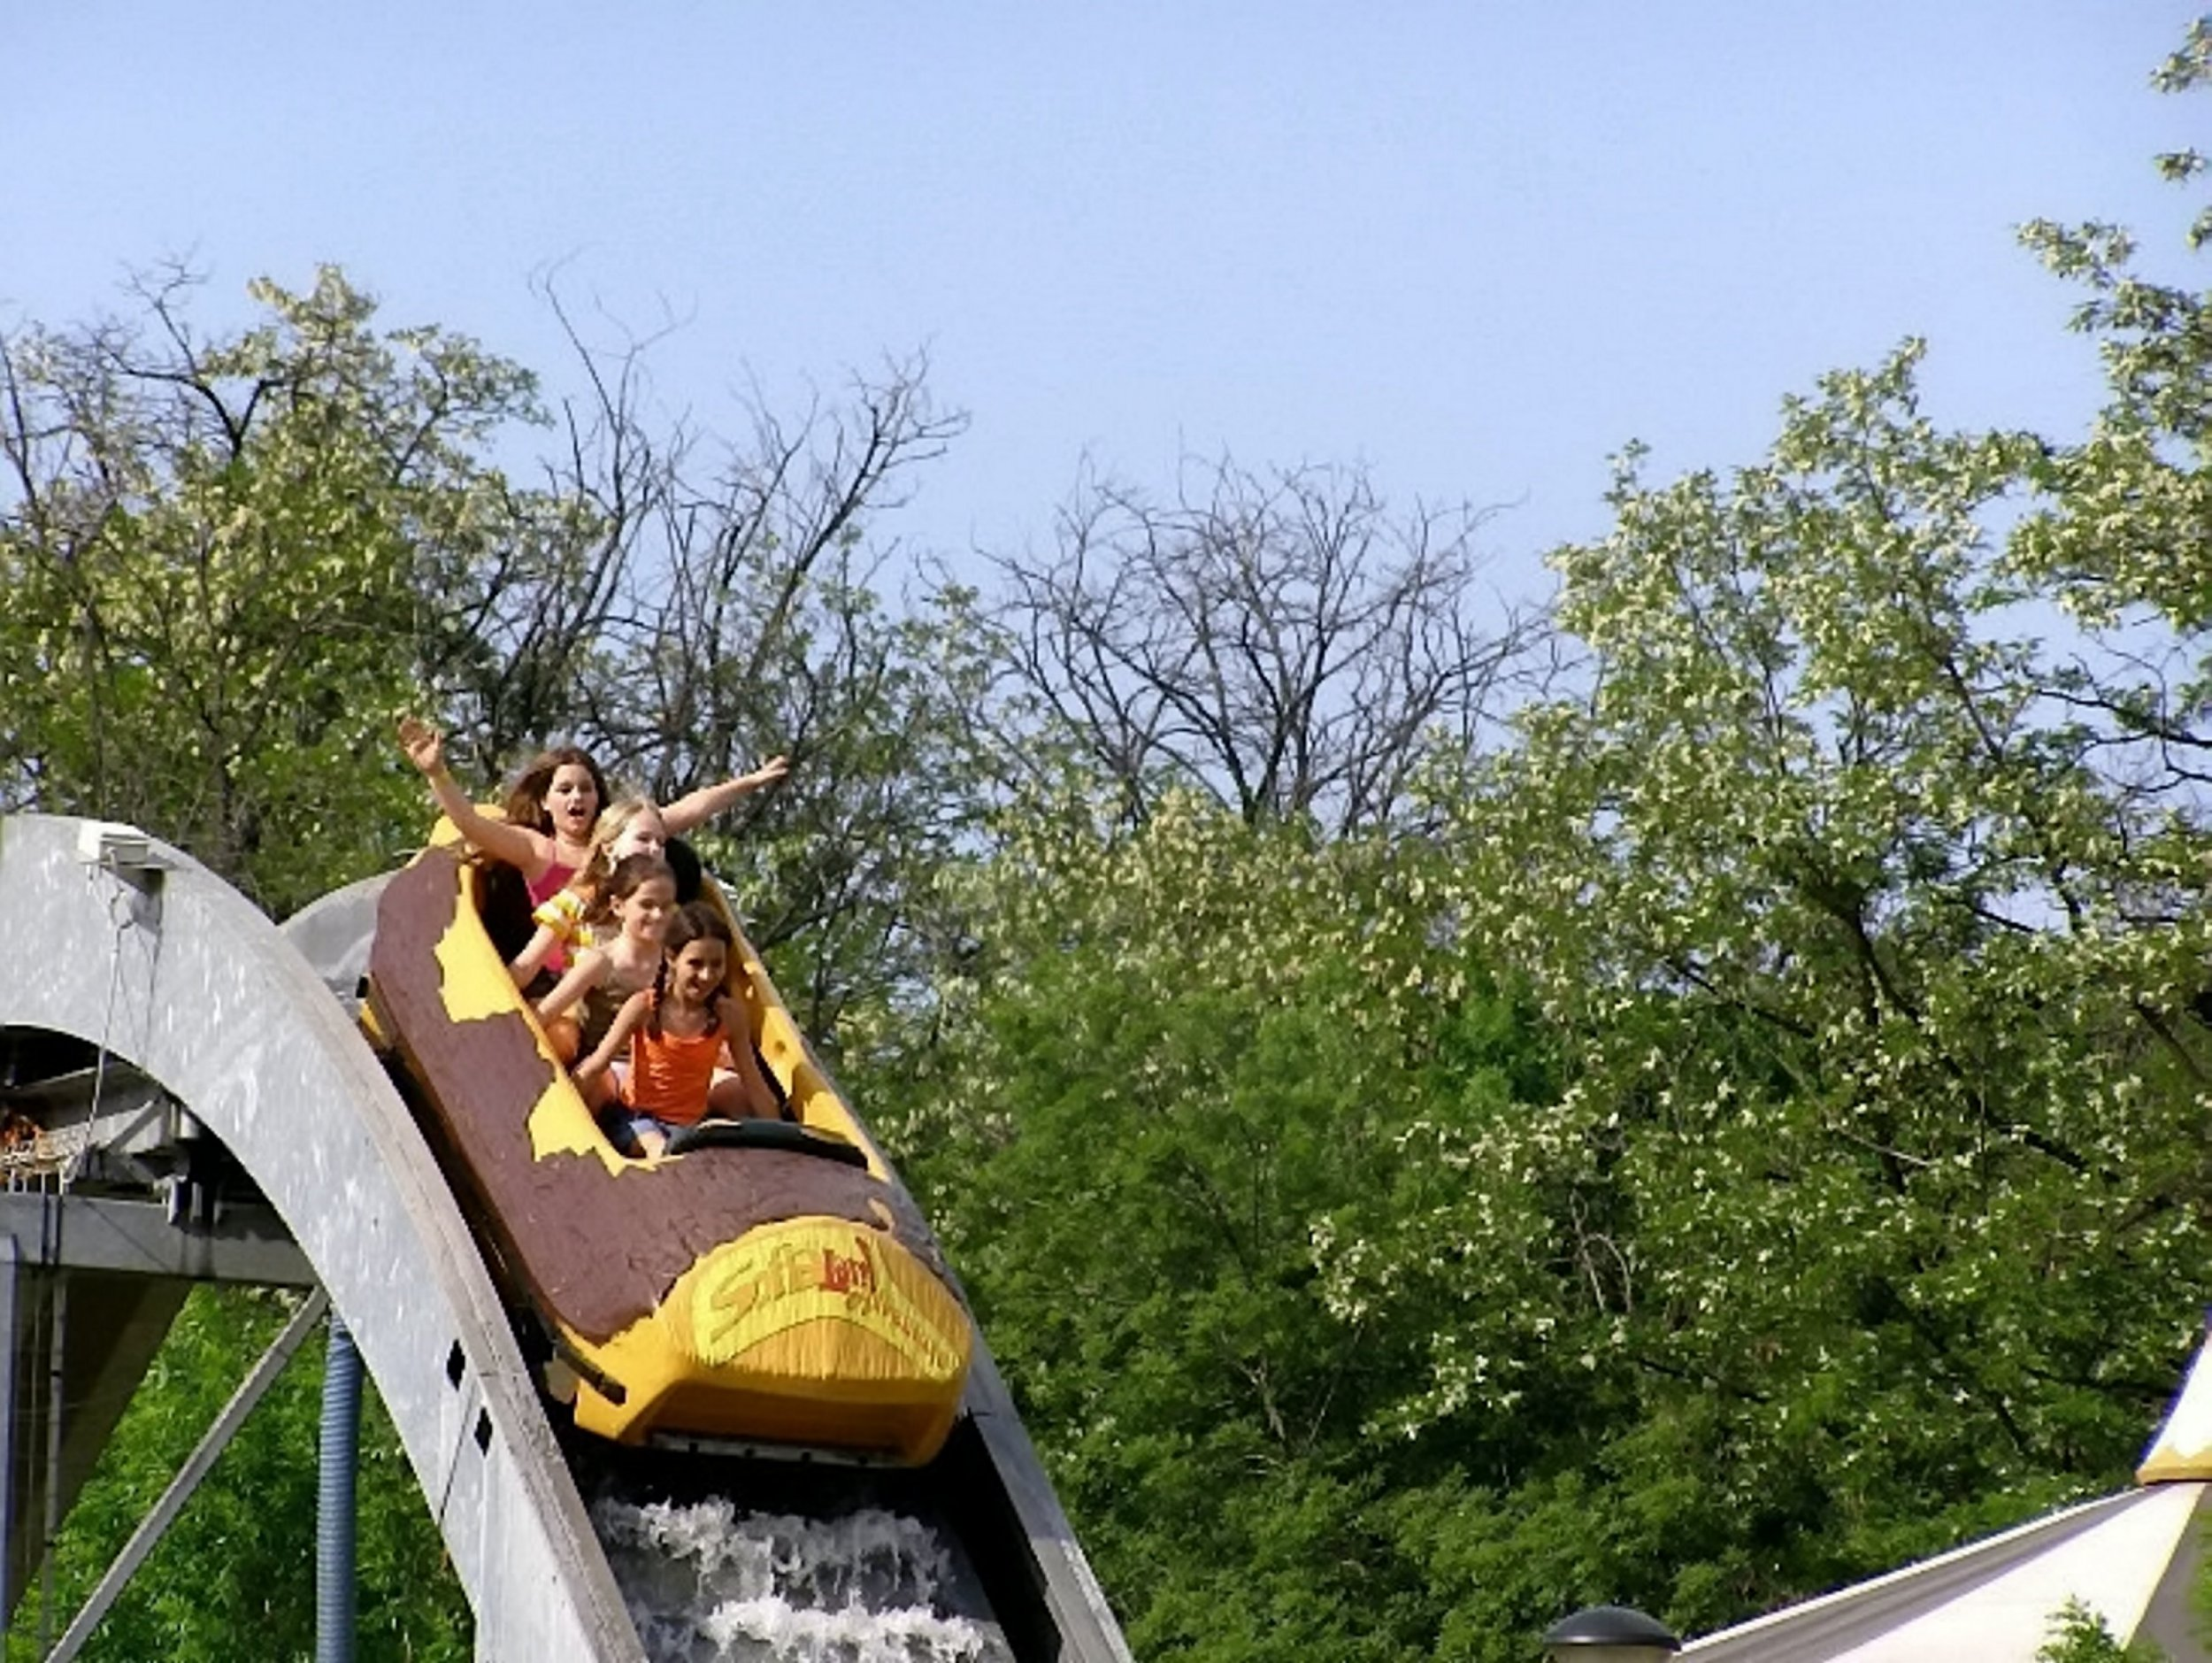 A theme park is selling a host of unusual items on eBay including a wooden log flume